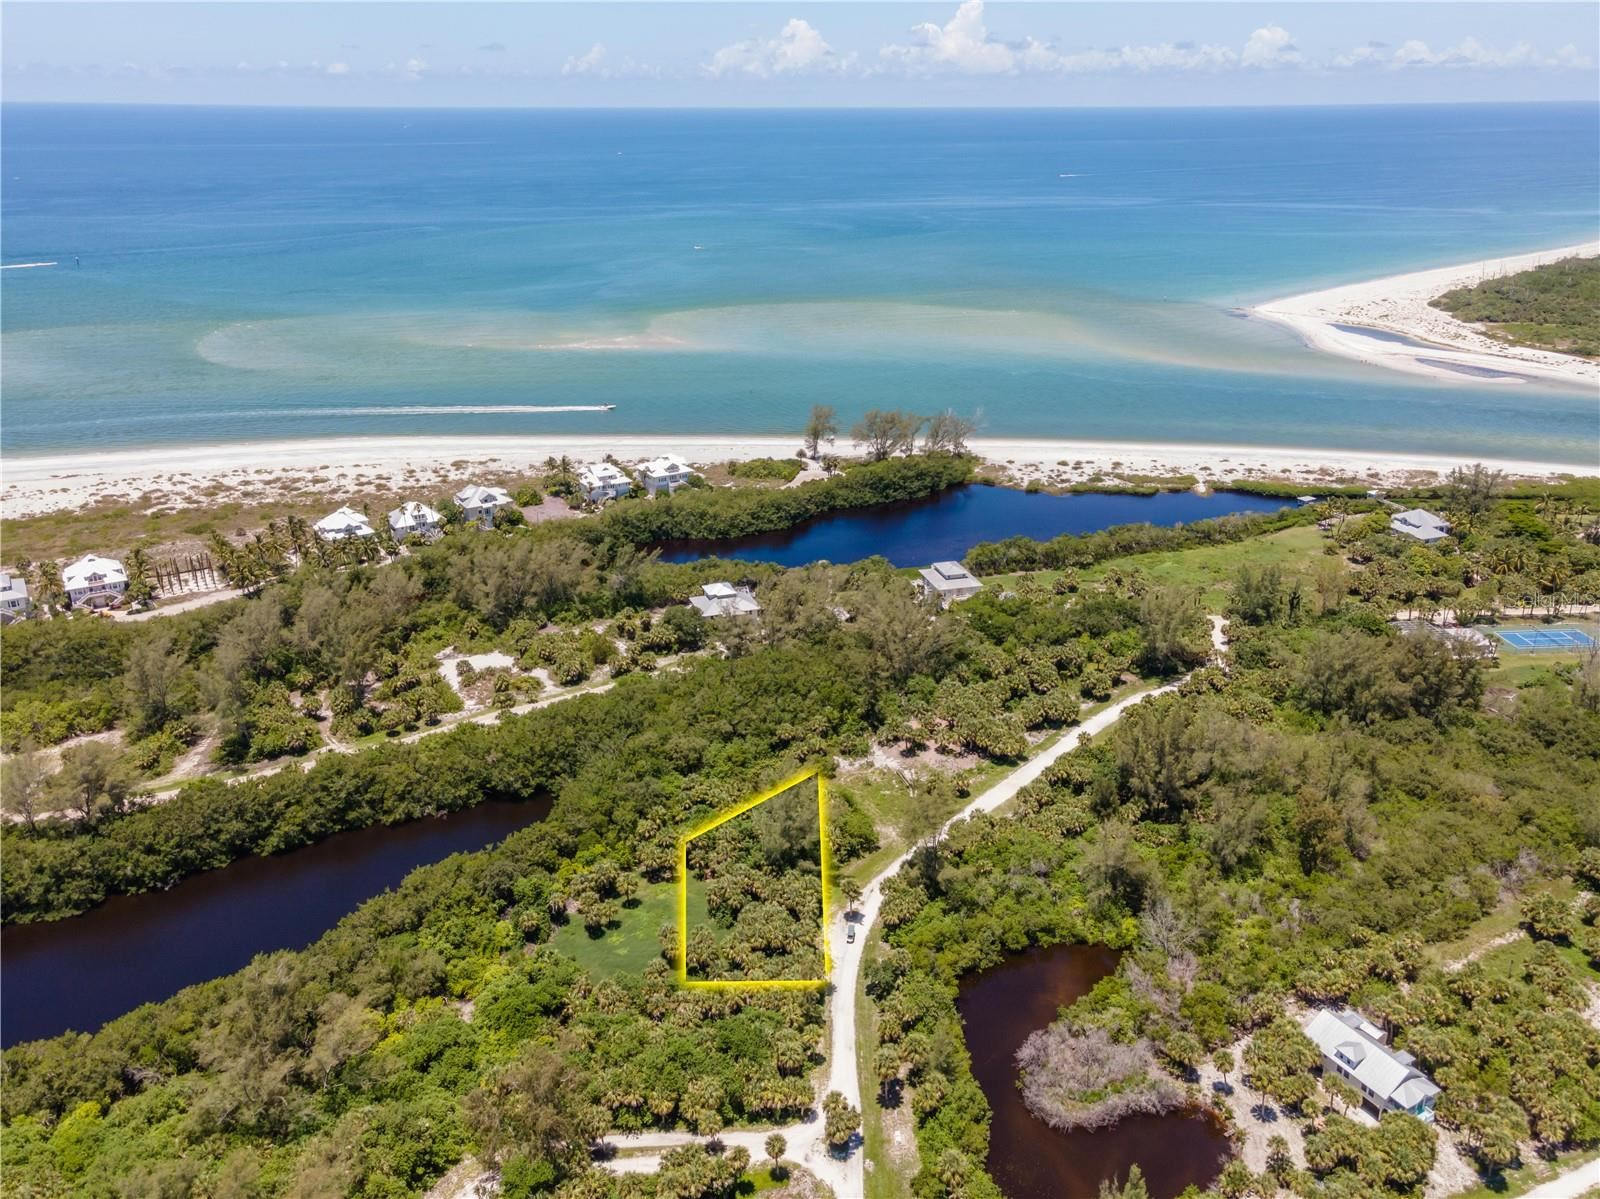 Photo of Blk 1 Lots 1 and 2 PALM POINT WAY, PLACIDA, FL 33946 (MLS # D6120635)